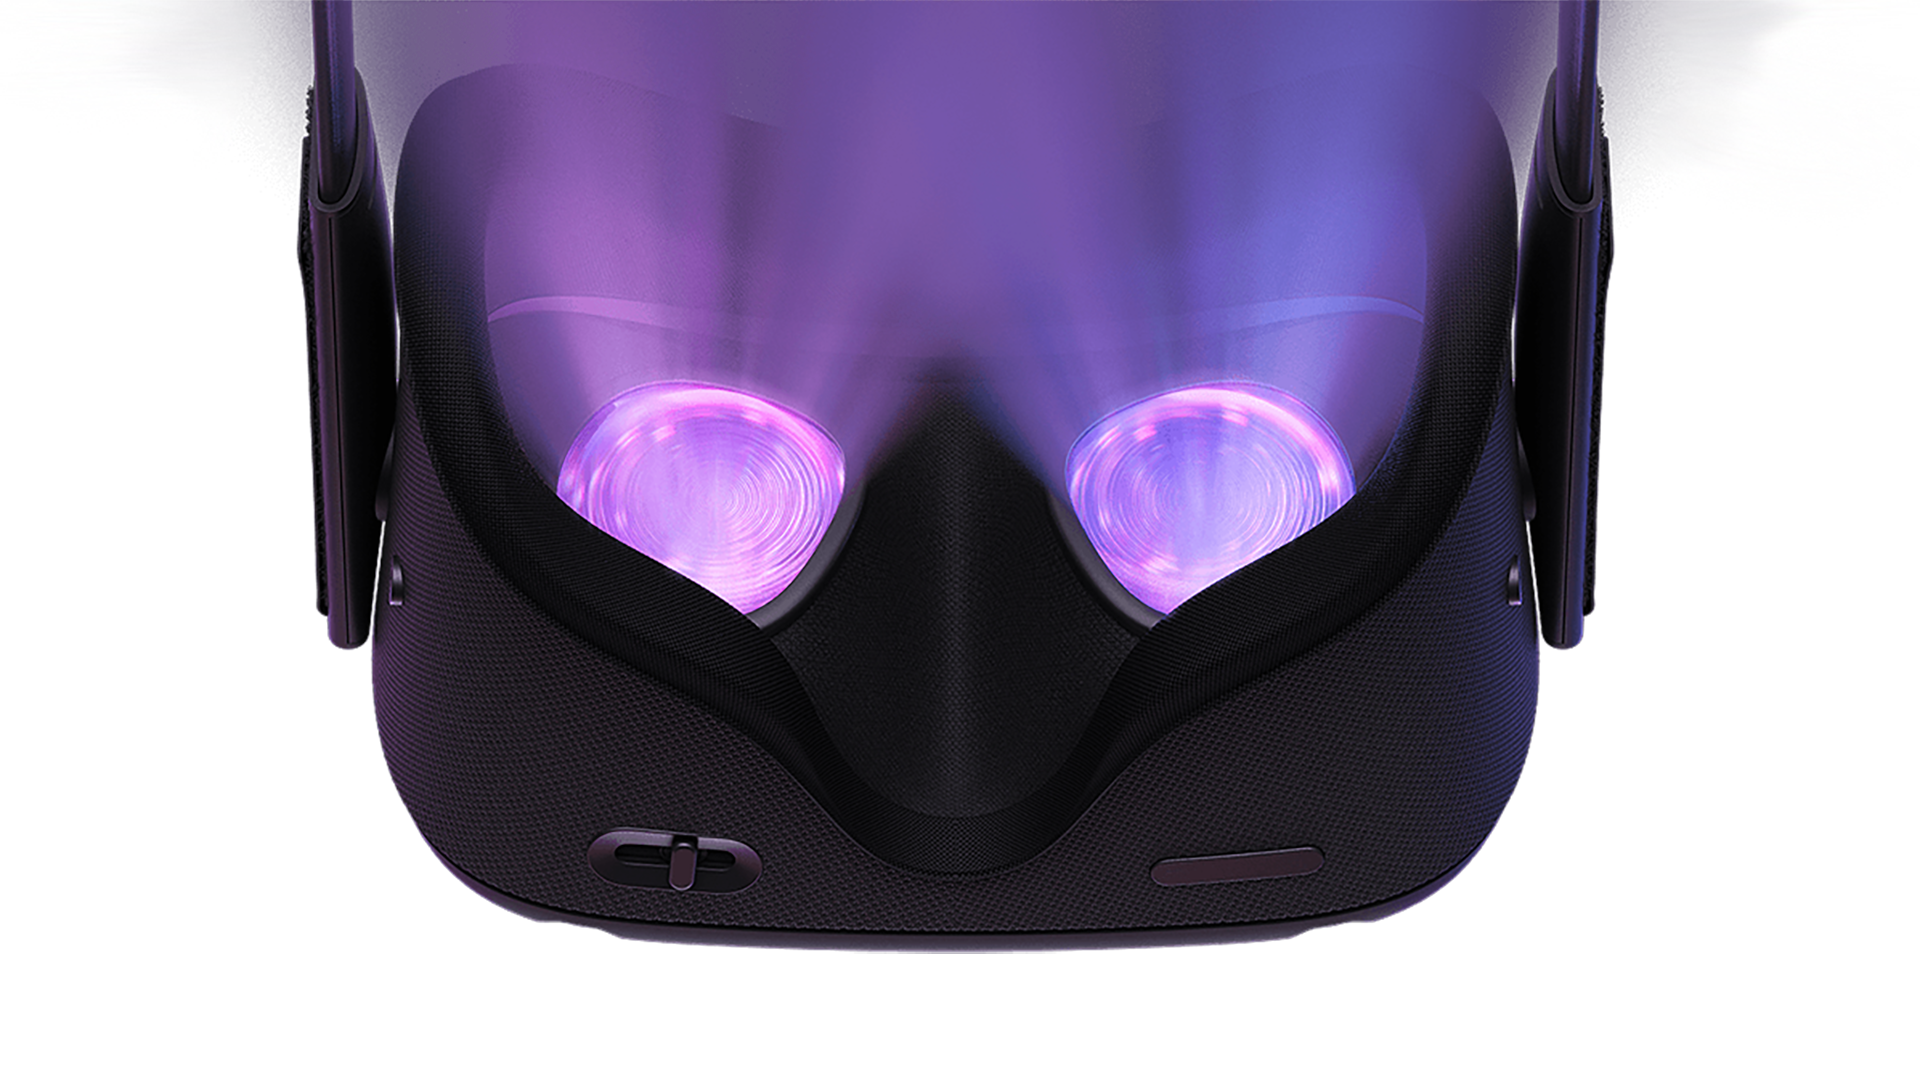 Oculus Quest VR Headset Coming Spring 2019 For $399